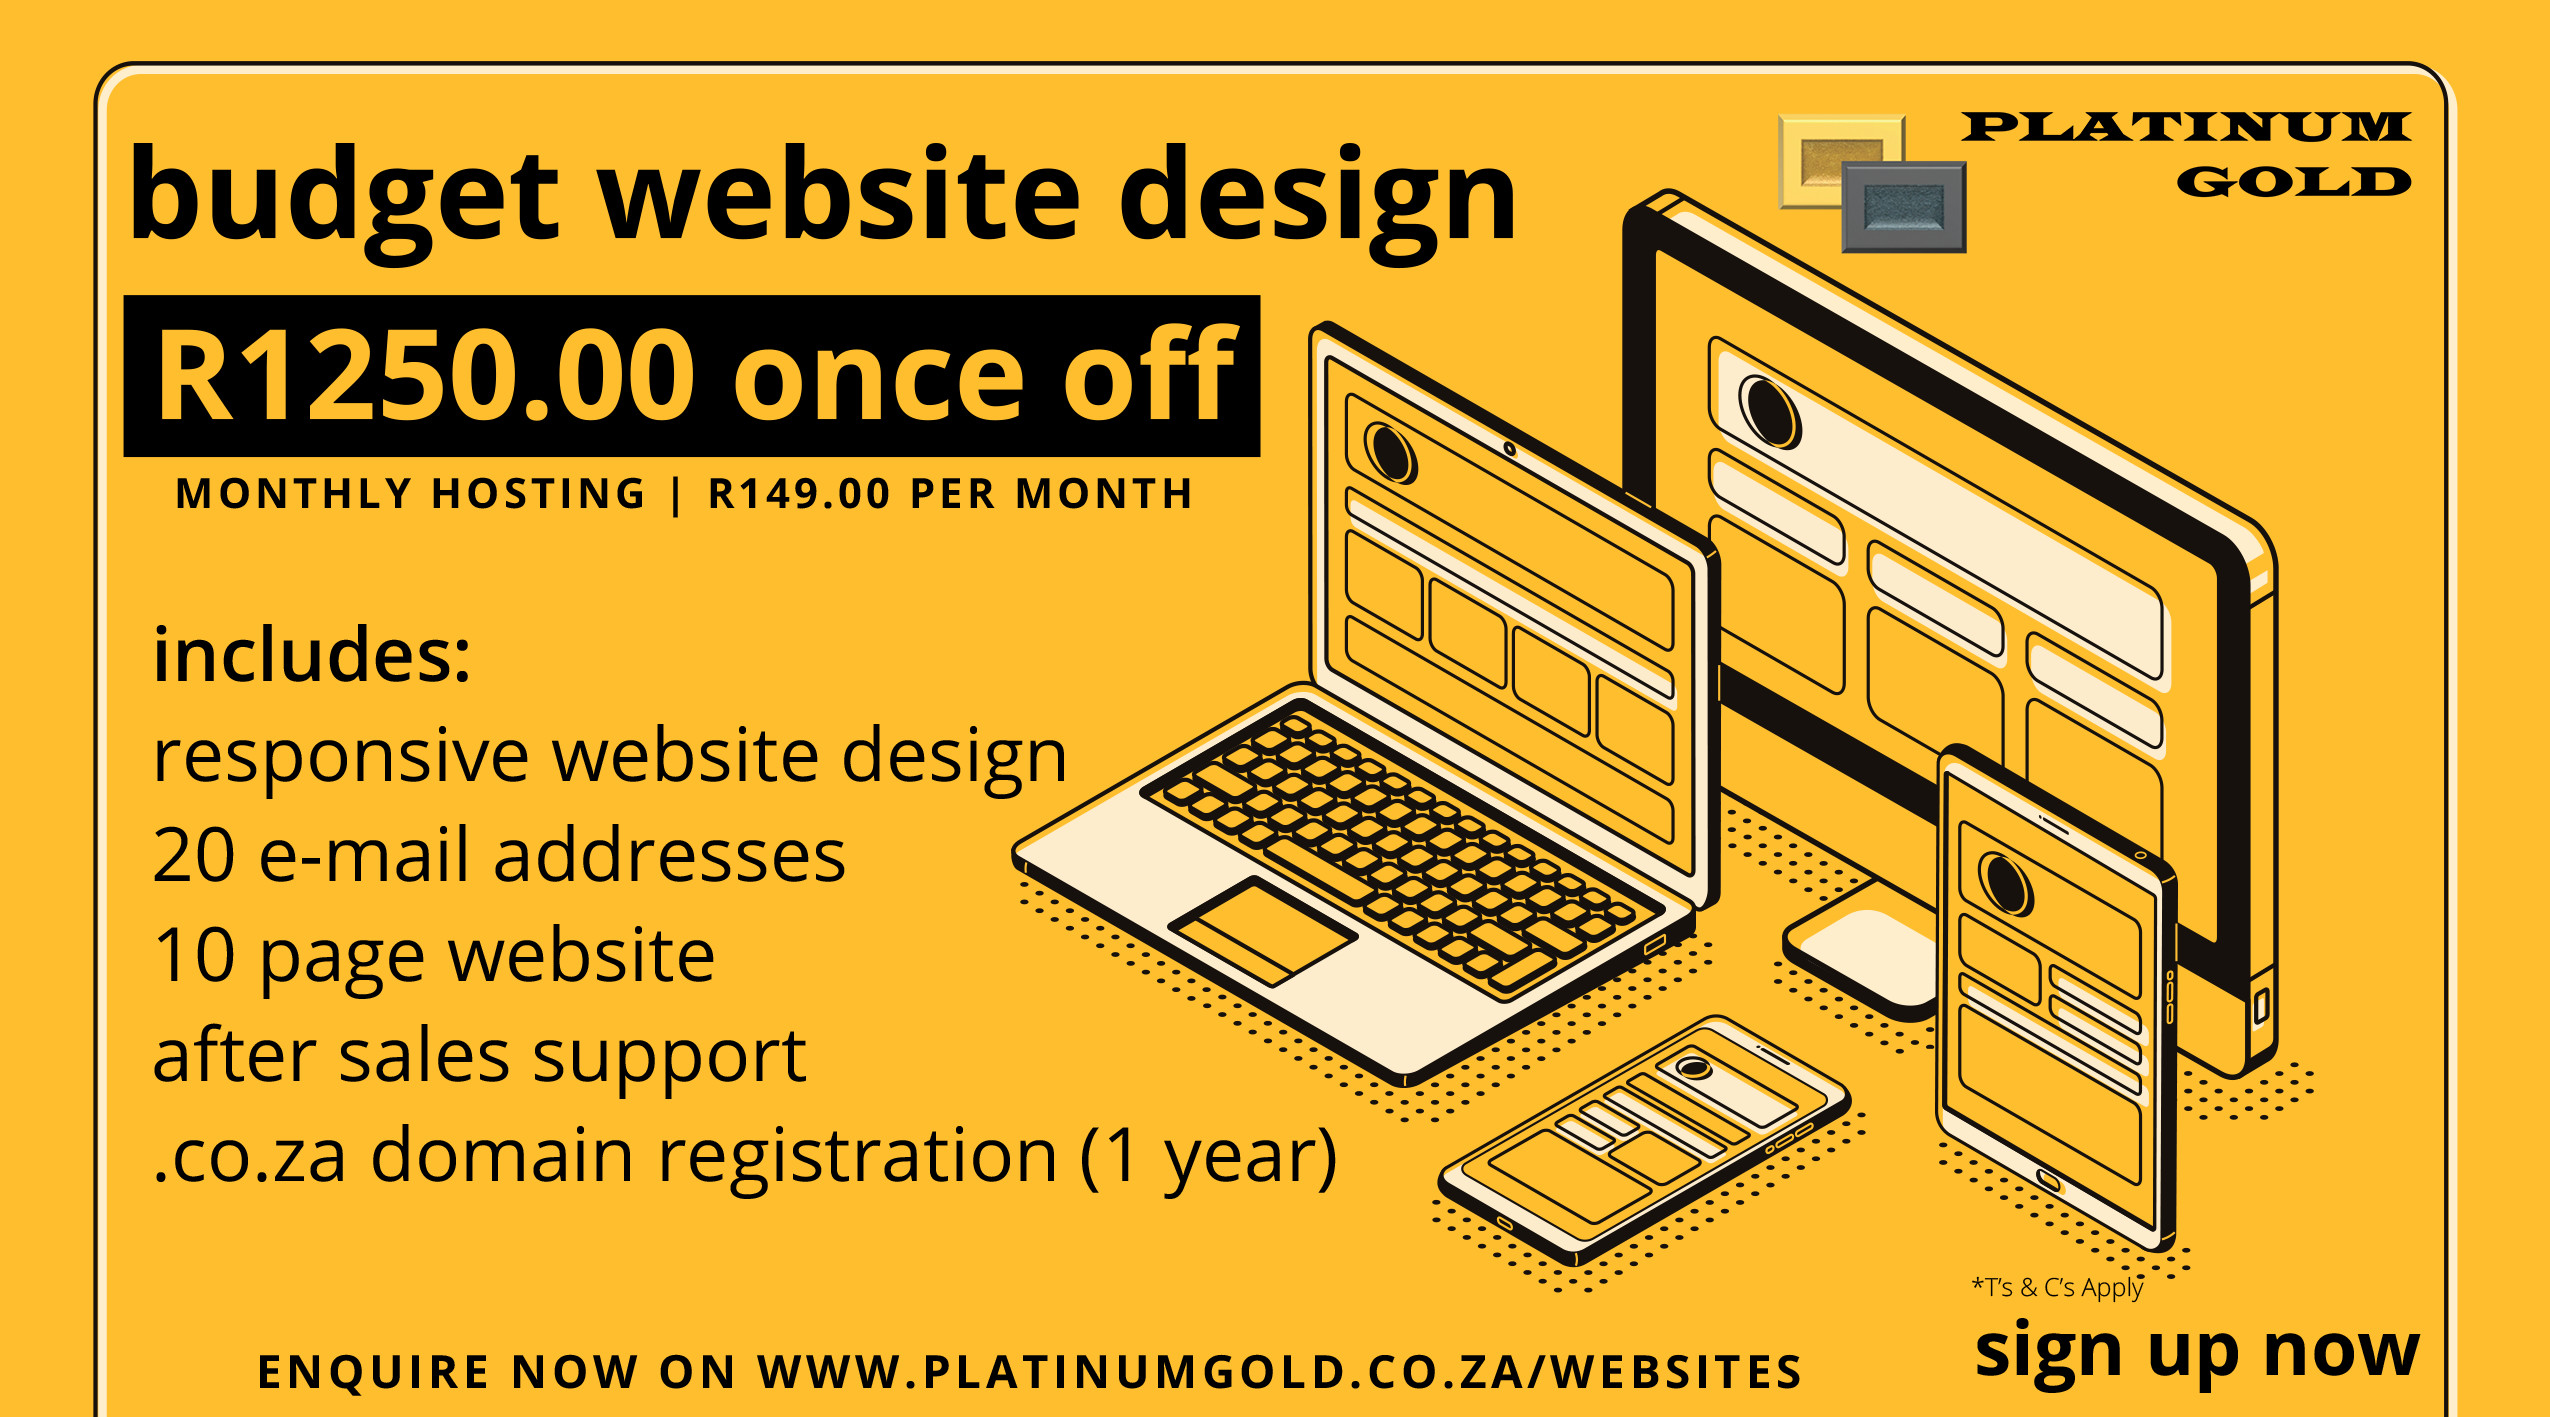 PG Budget Websites Ad 03